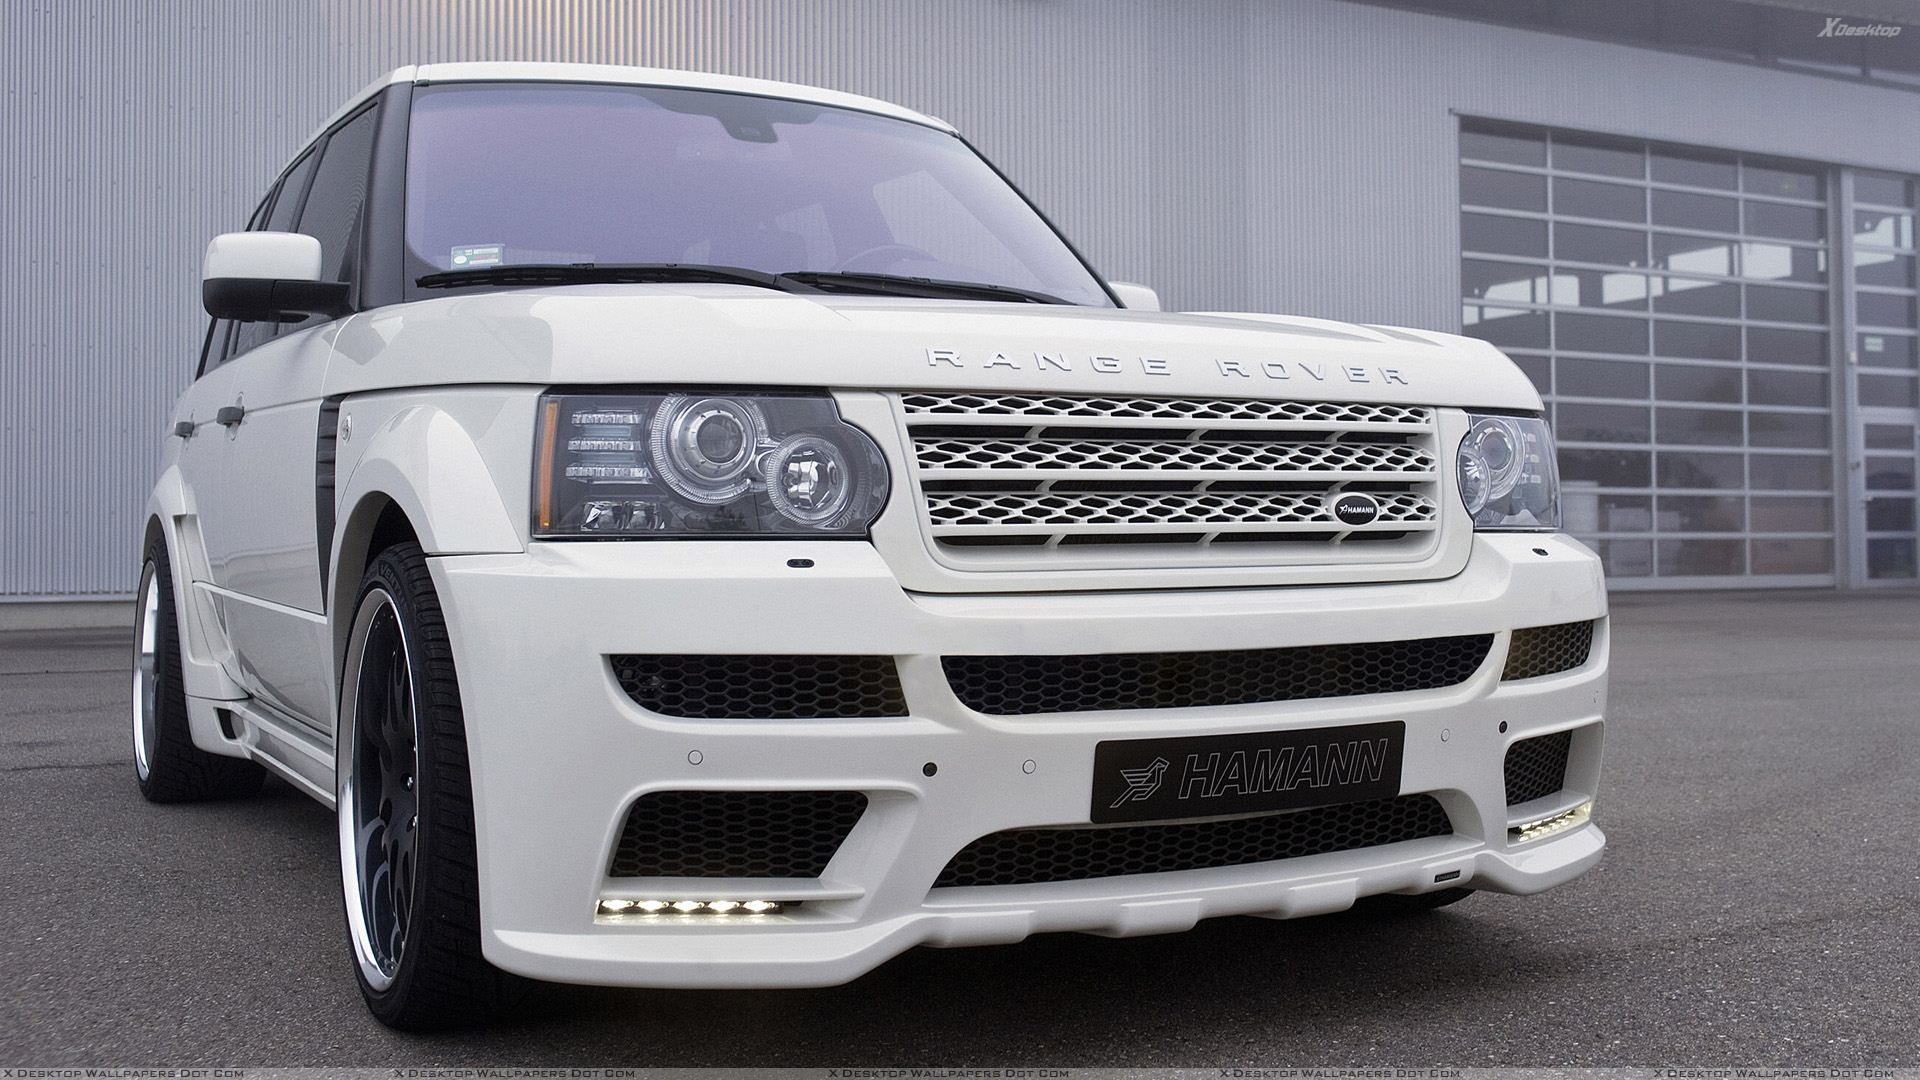 hamann range rover 5.0i v8 supercharged in white front pose wallpaper